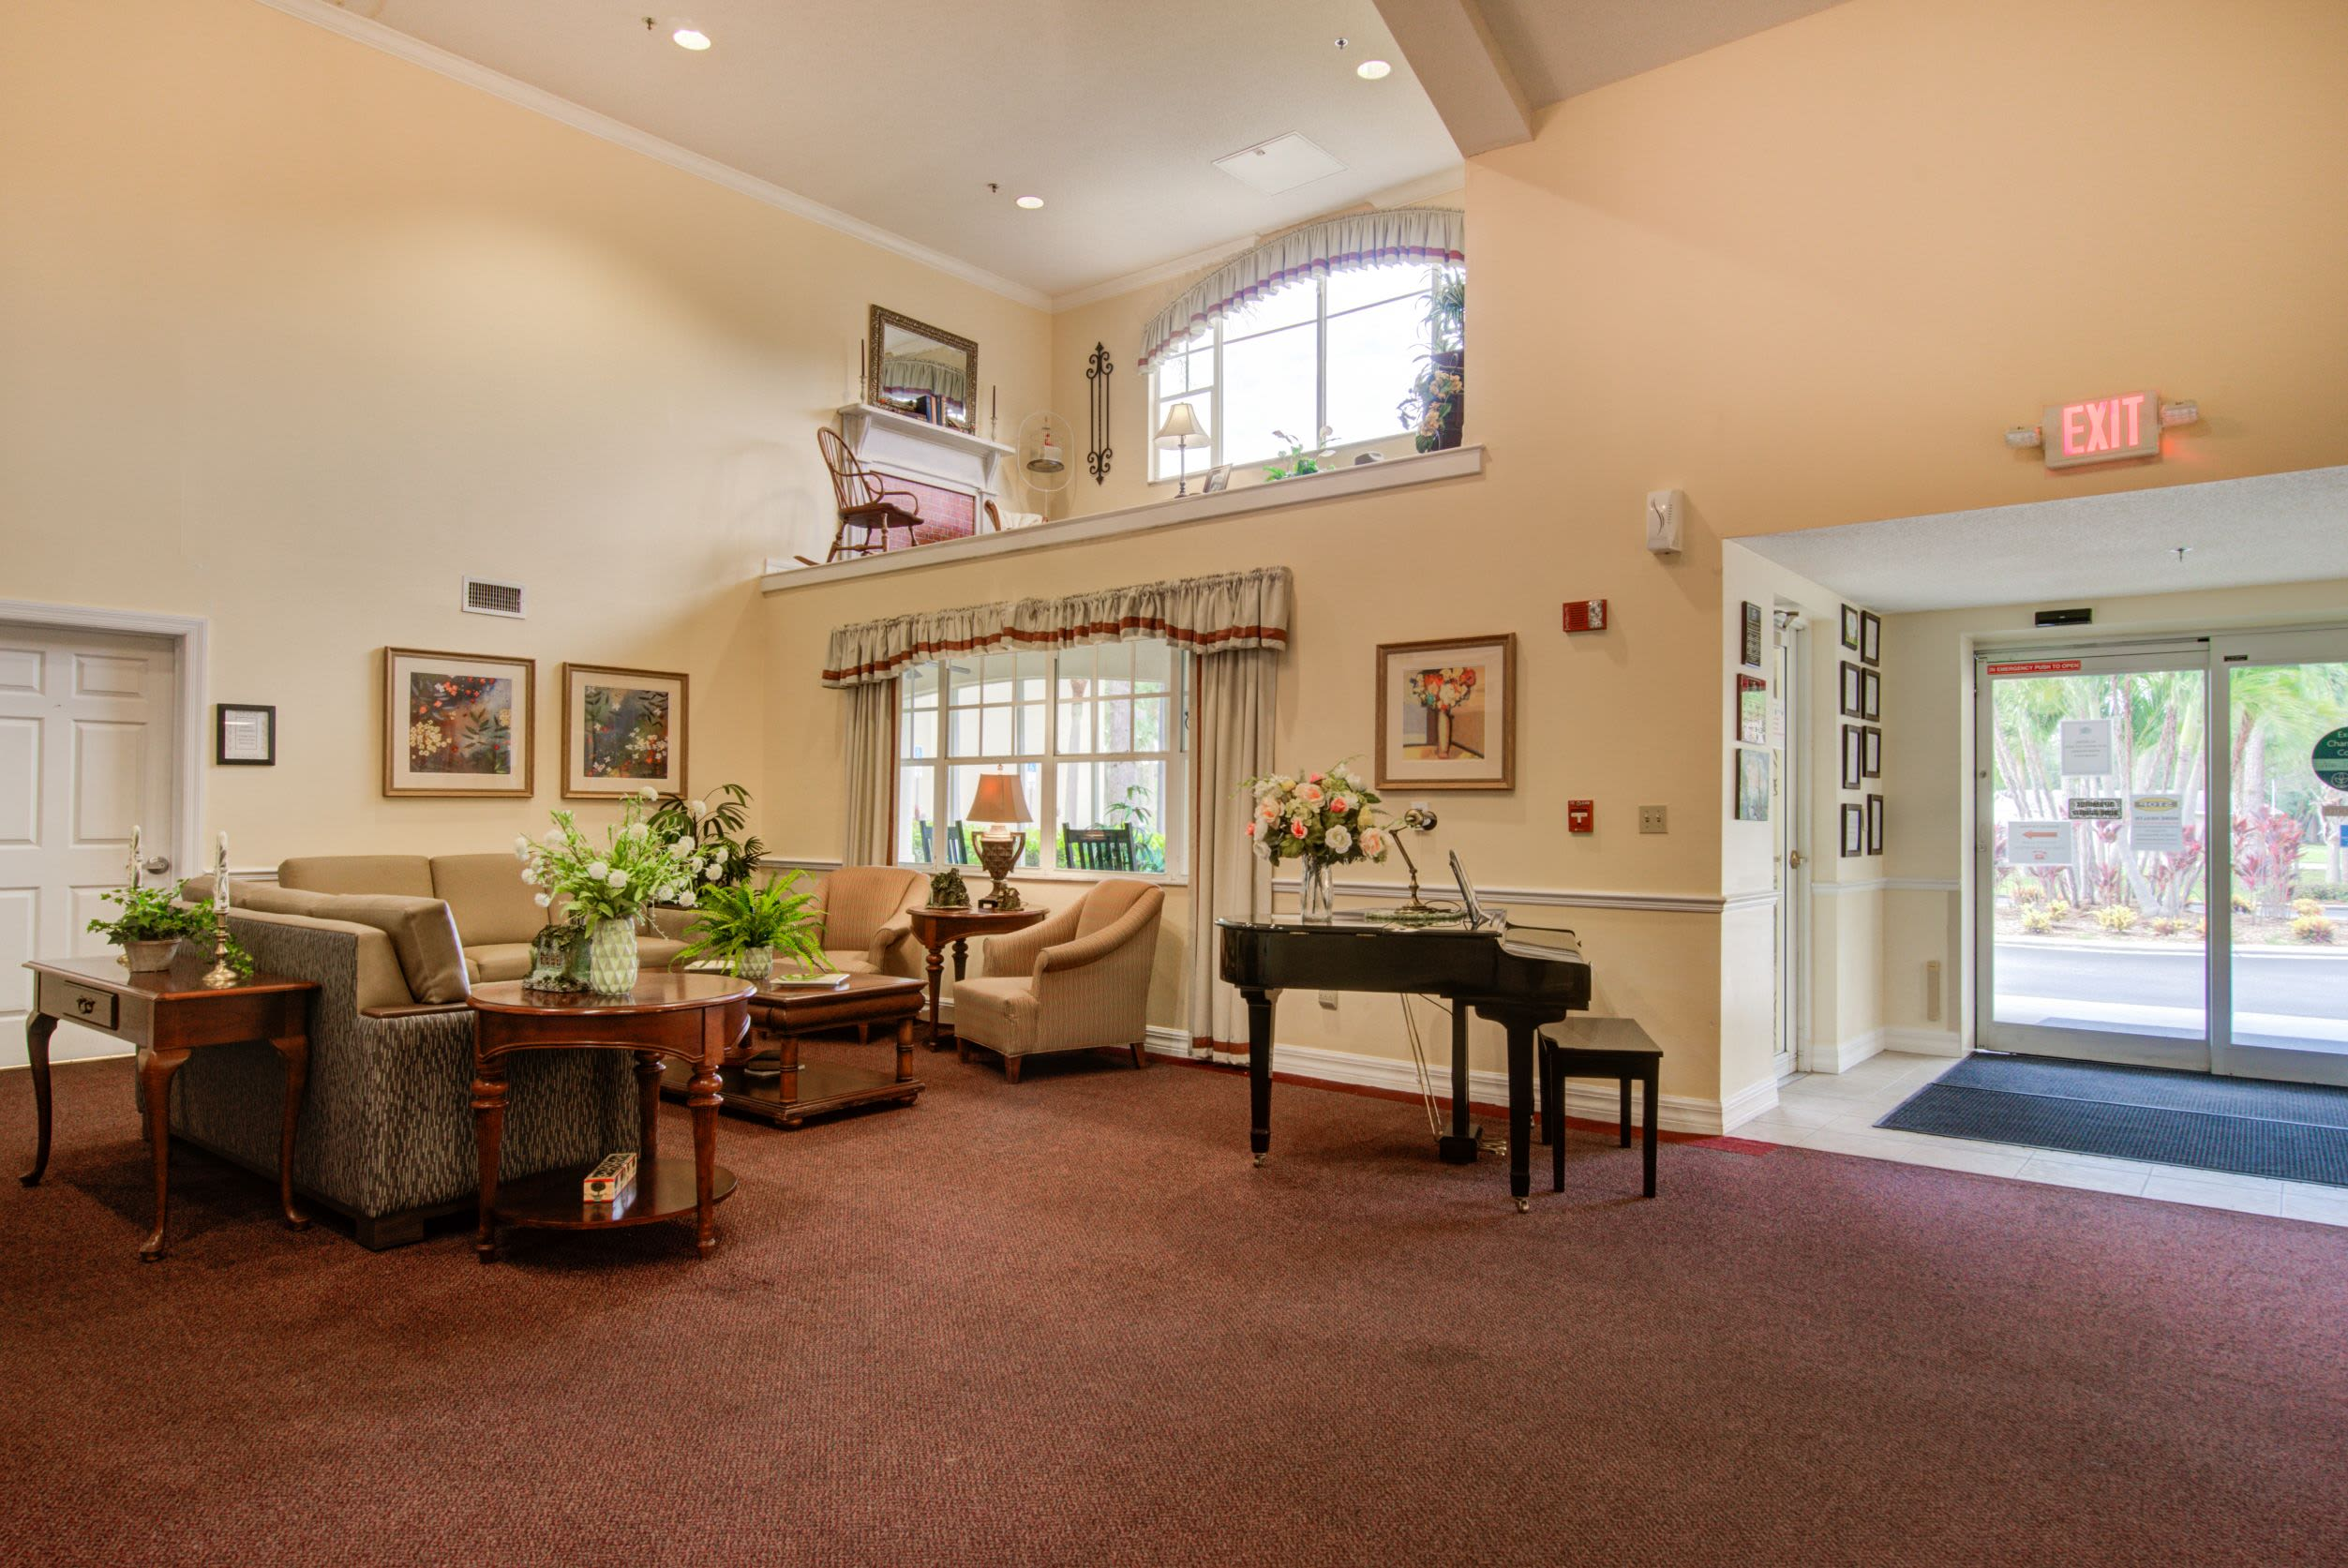 Entrance with piano at Truewood by Merrill, Charlotte Center in Port Charlotte, Florida.